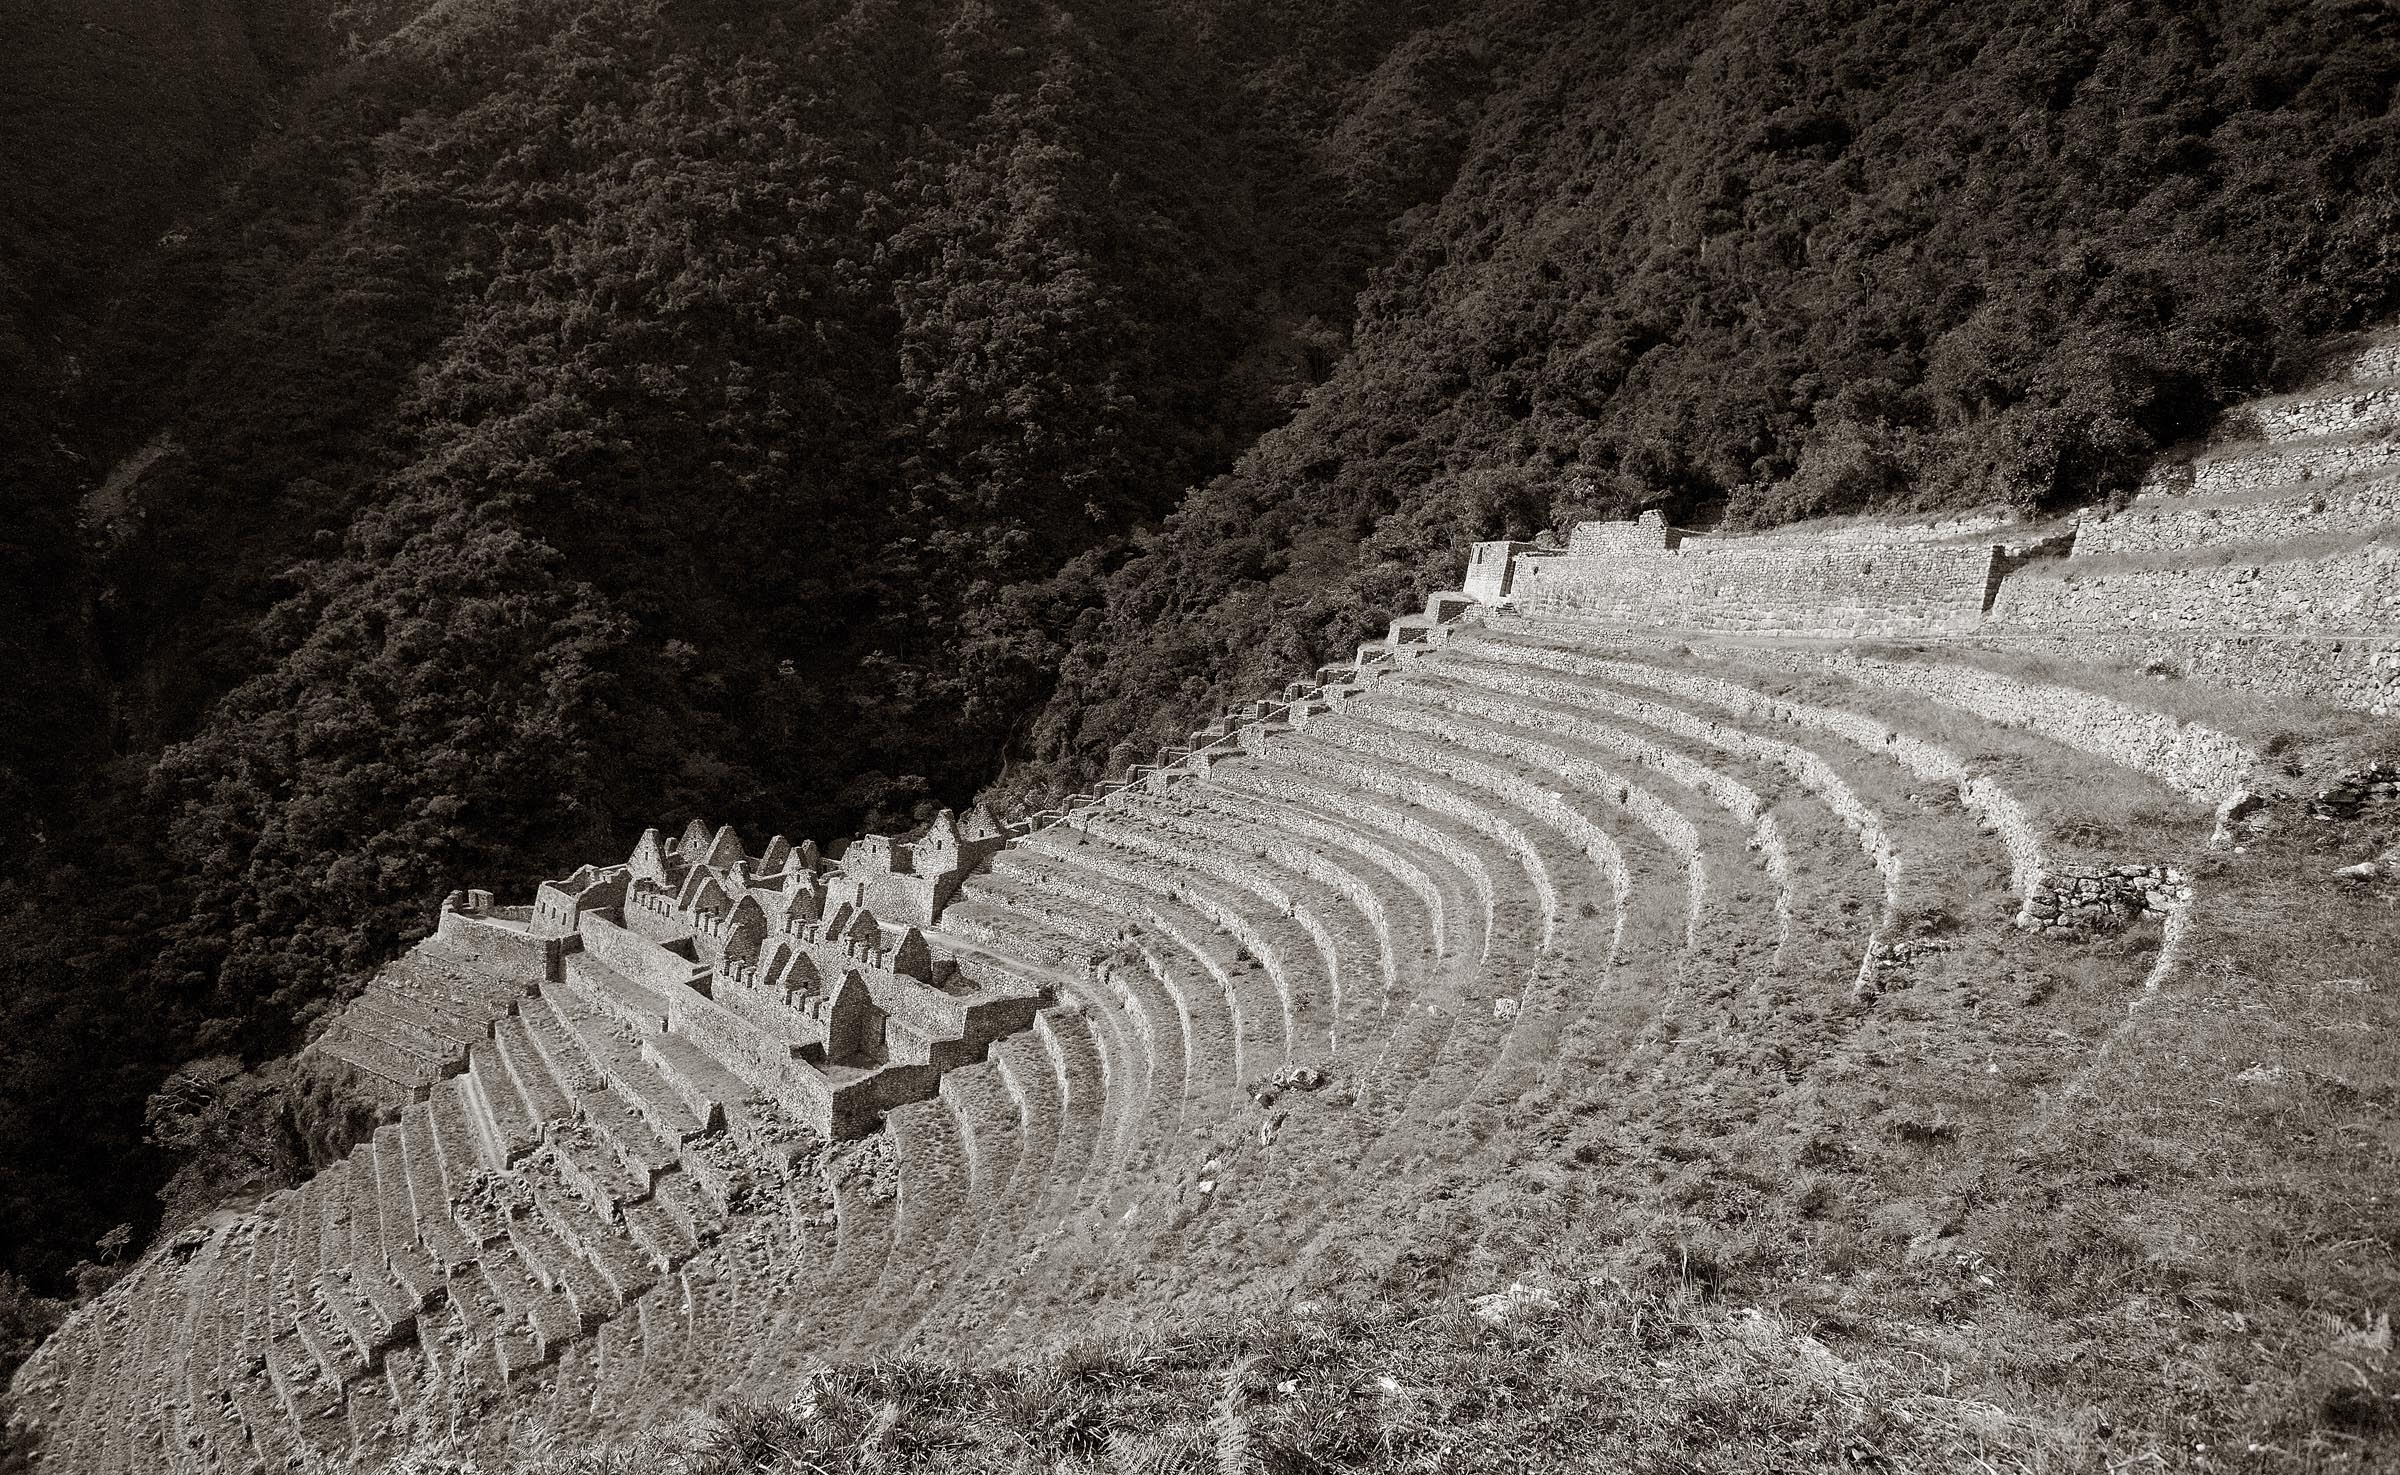 A moonlit timed exposure of the archaeological site of Wiñaywayna.